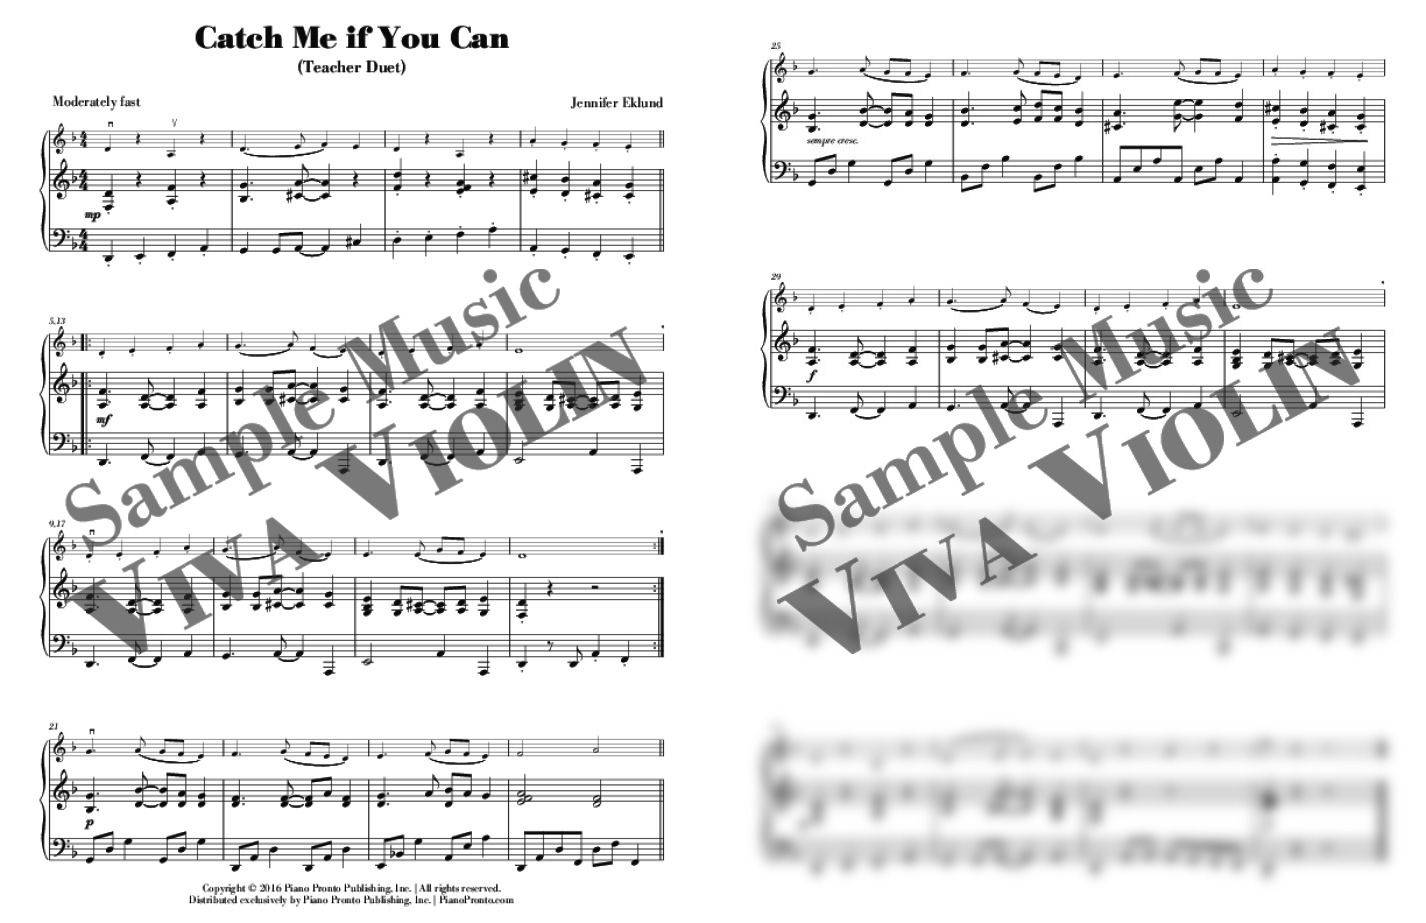 Catch Me if You Can - Easy Violin Solo